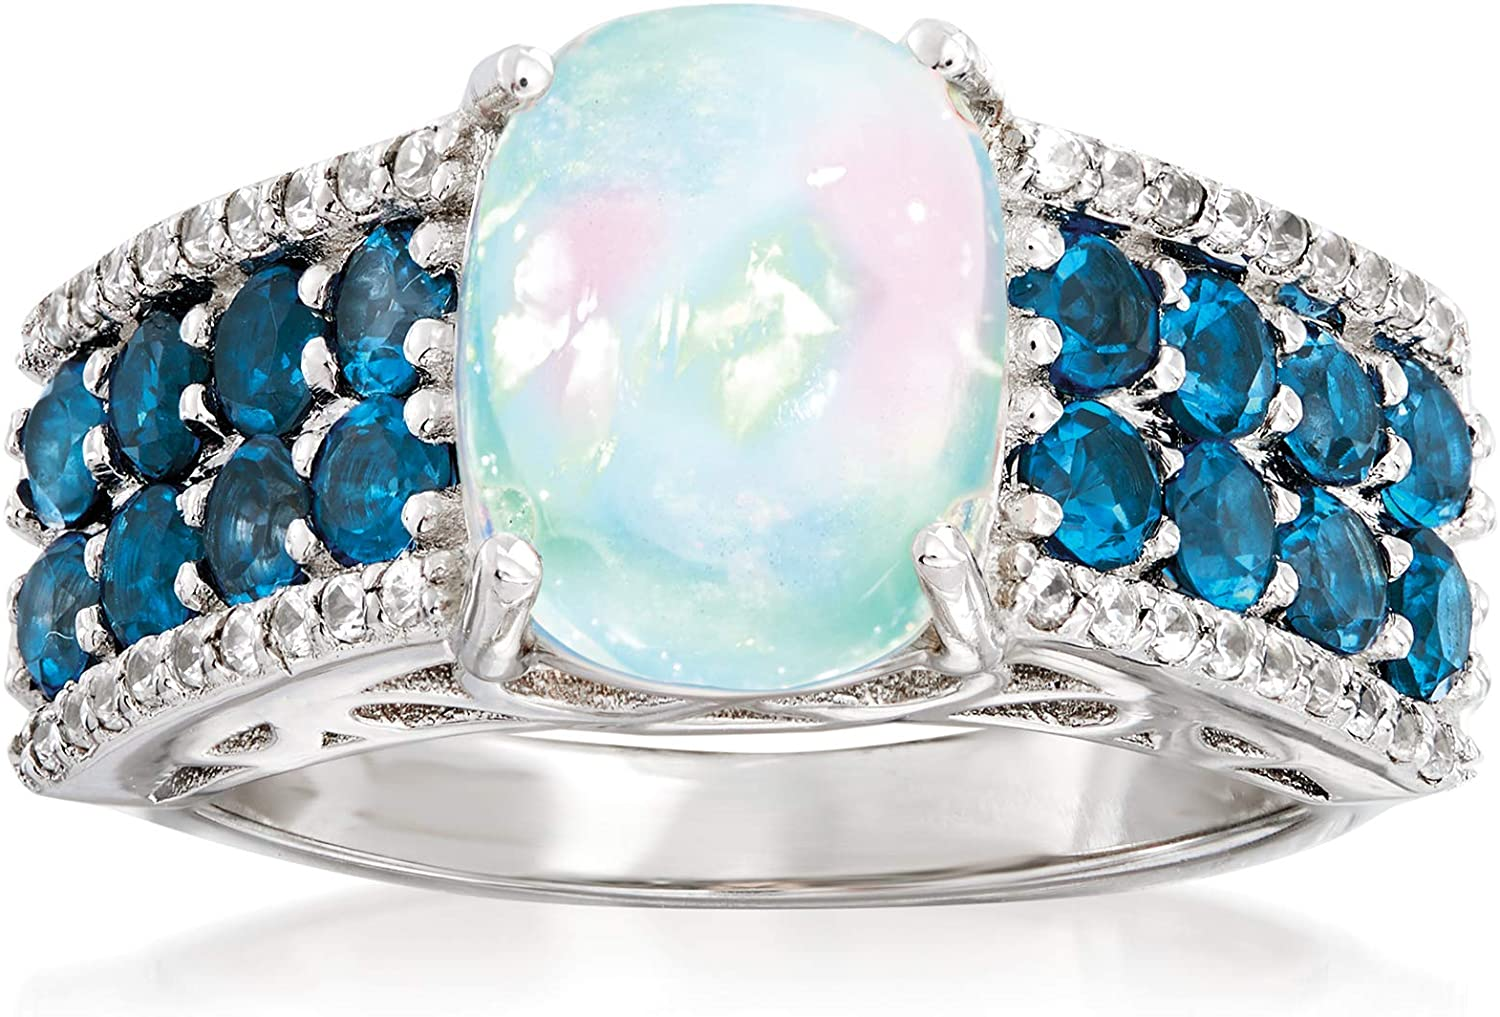 Ross-Simons 10x8mm Opal, 13.00 ct. t.w. Lodon Blue Topaz and .20 ct. t.w. White Zircon Ring in Sterling Silver